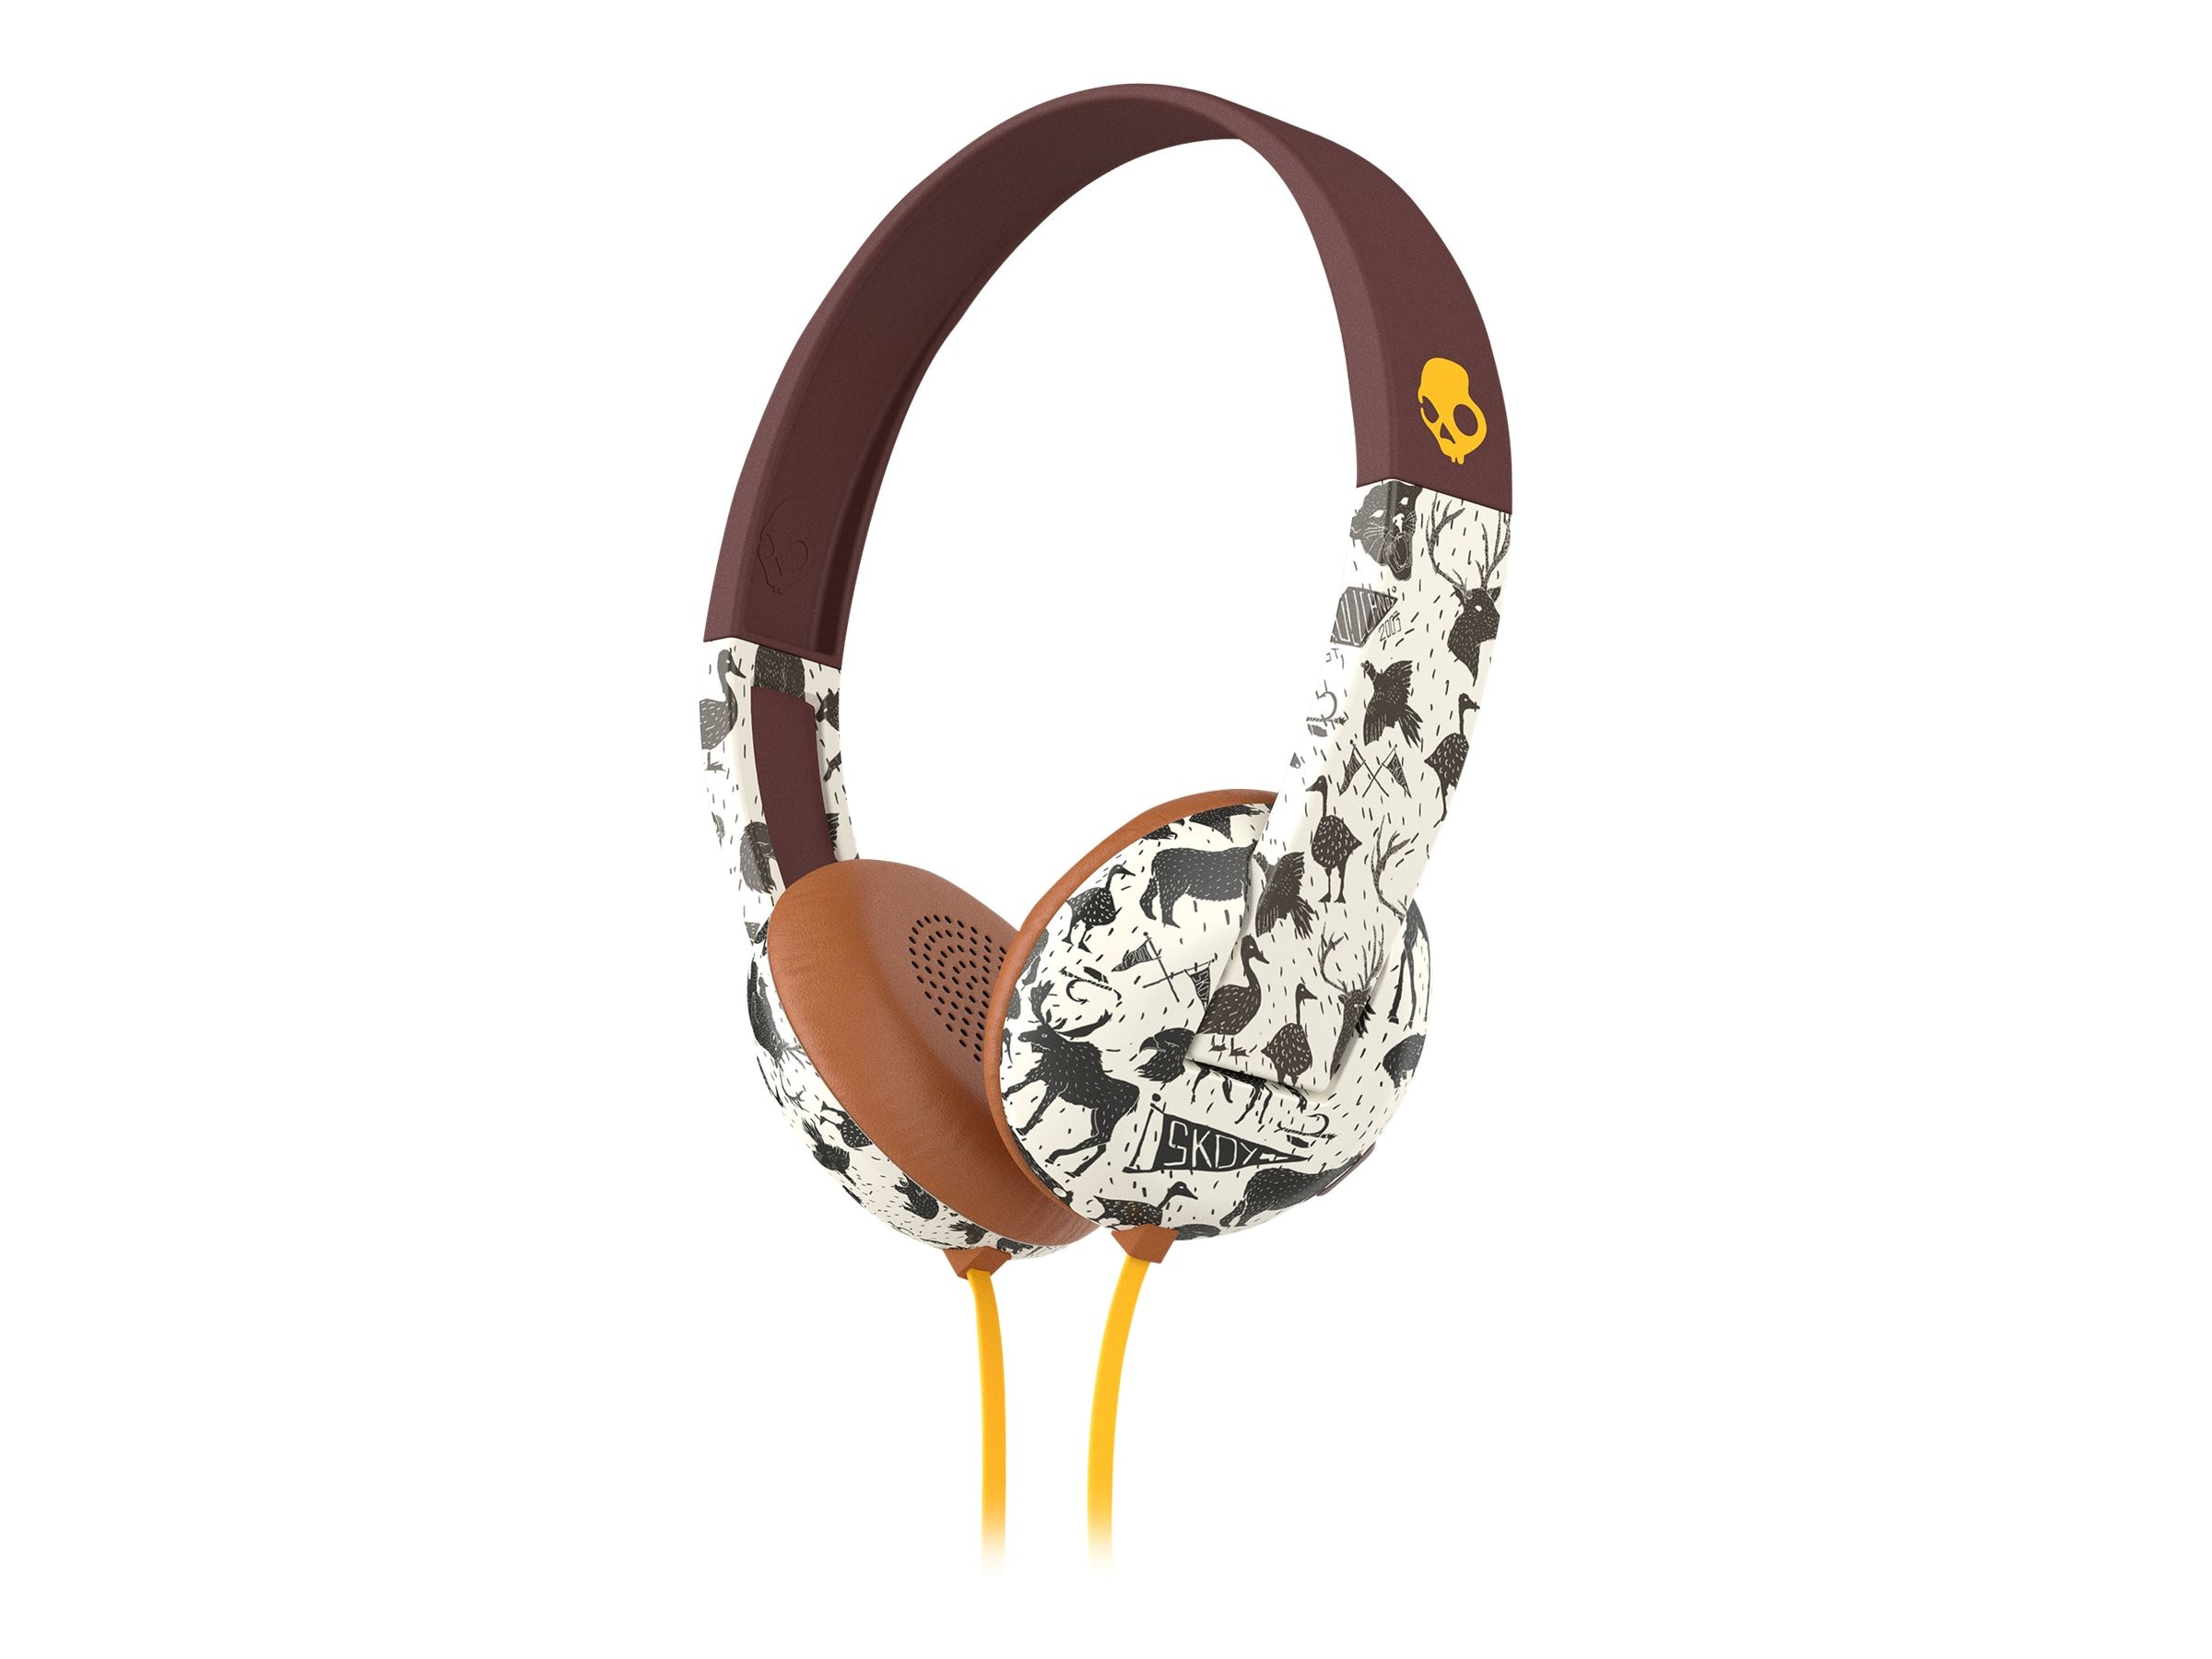 Skullcandy Uproar Headphones - Explore Animal Mustard